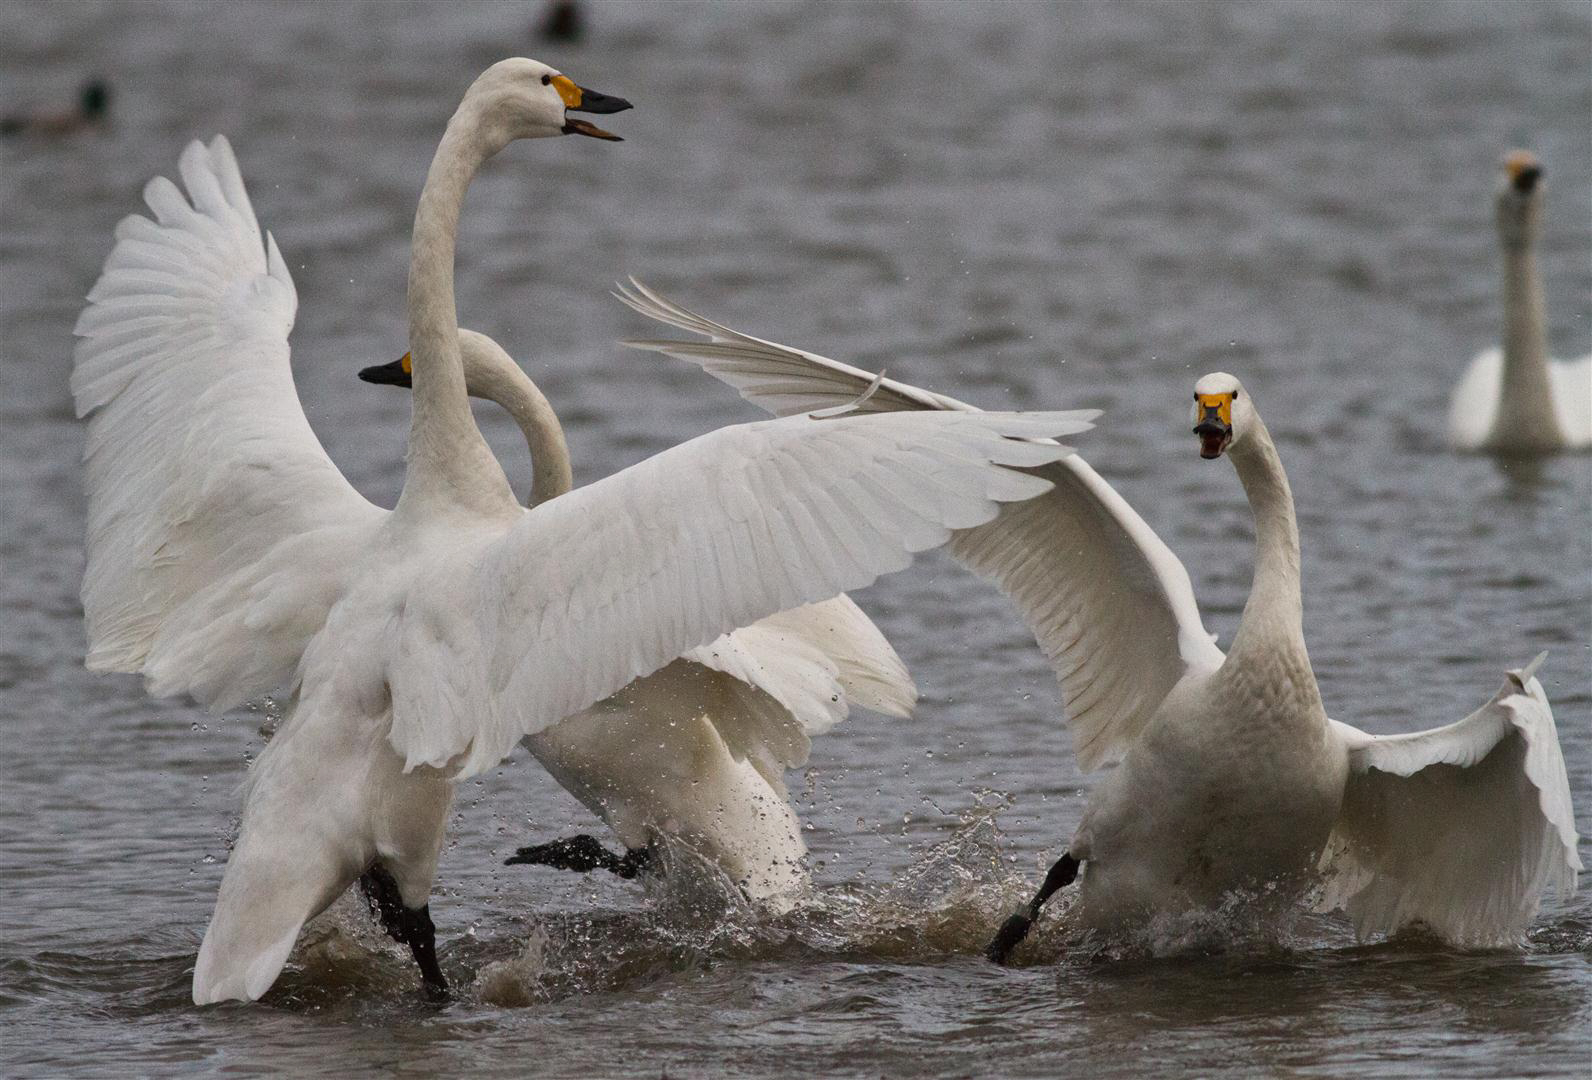 Swans reserve aggression for each other, new research has found